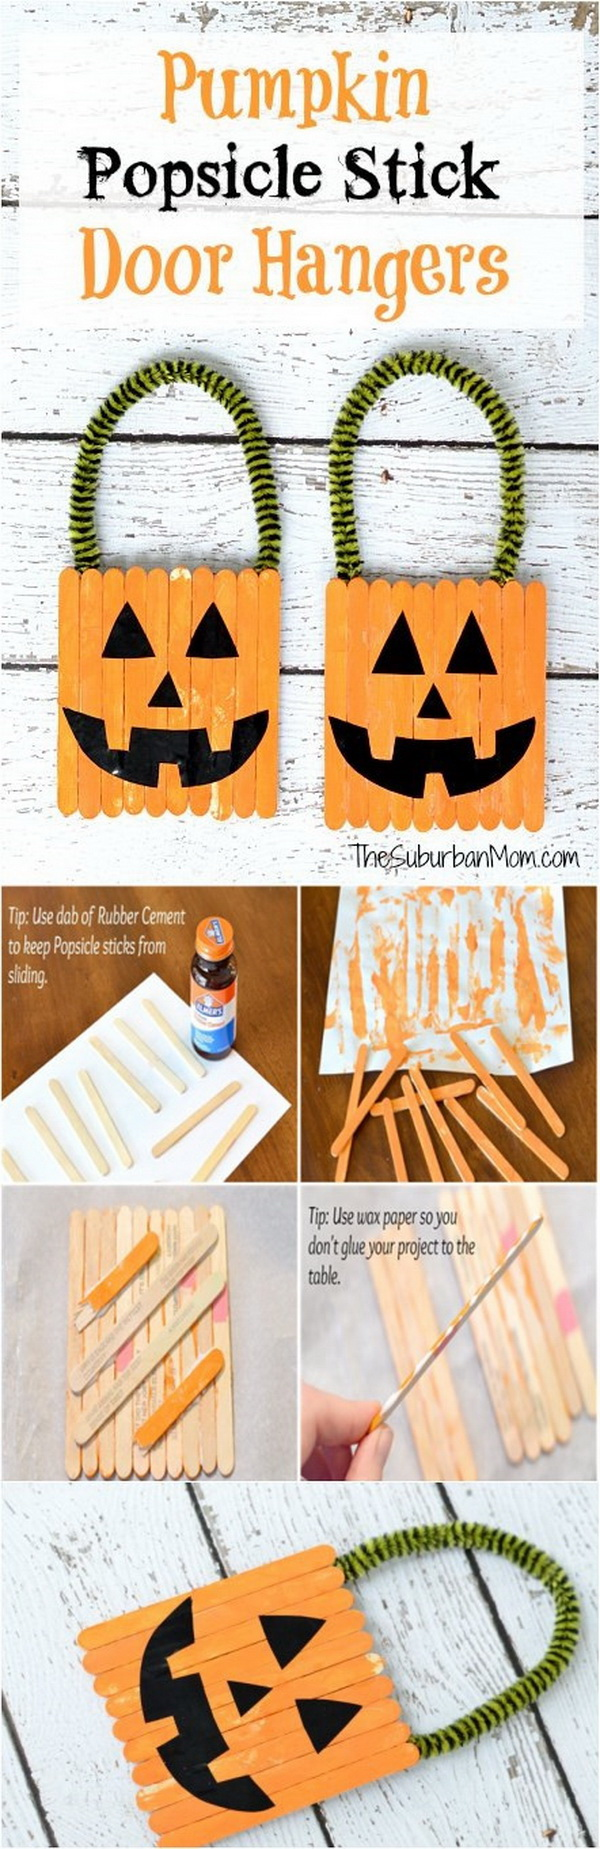 25 Easy And Fun Diy Halloween Crafts Even Kids Can Make